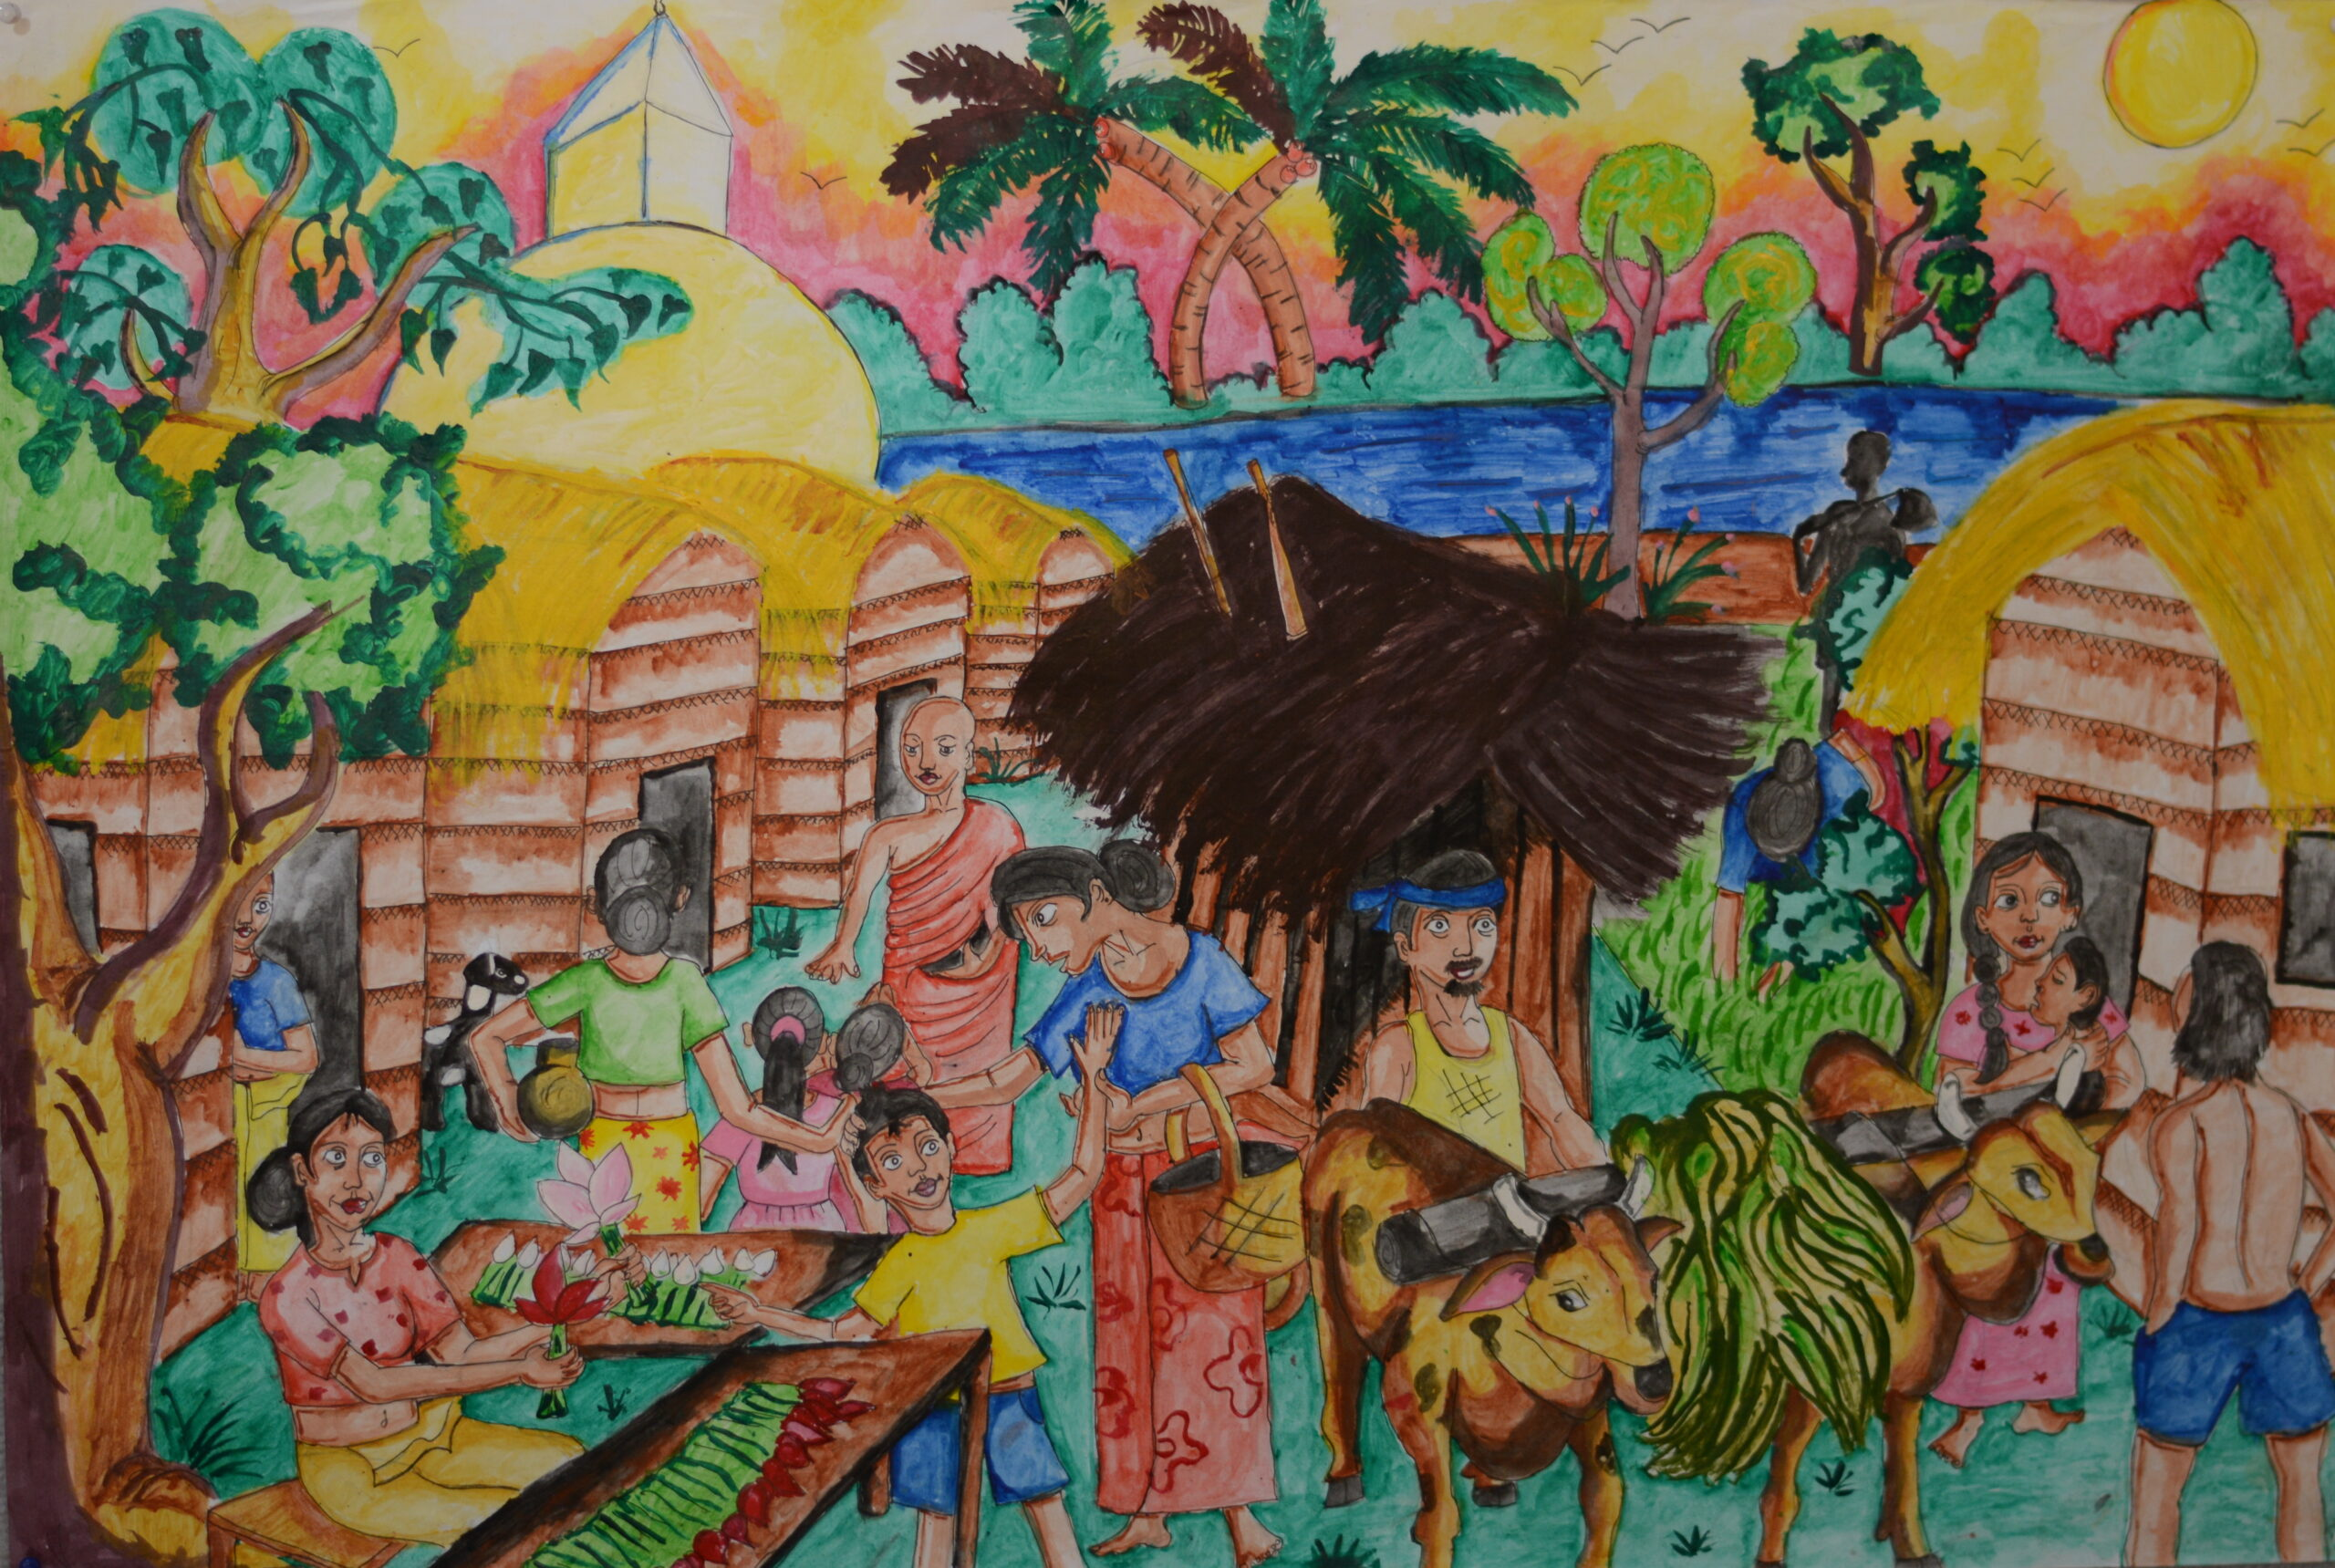 The ancient Sri Lankan life with a sustainable economy_S. D. Amanda Pabasara